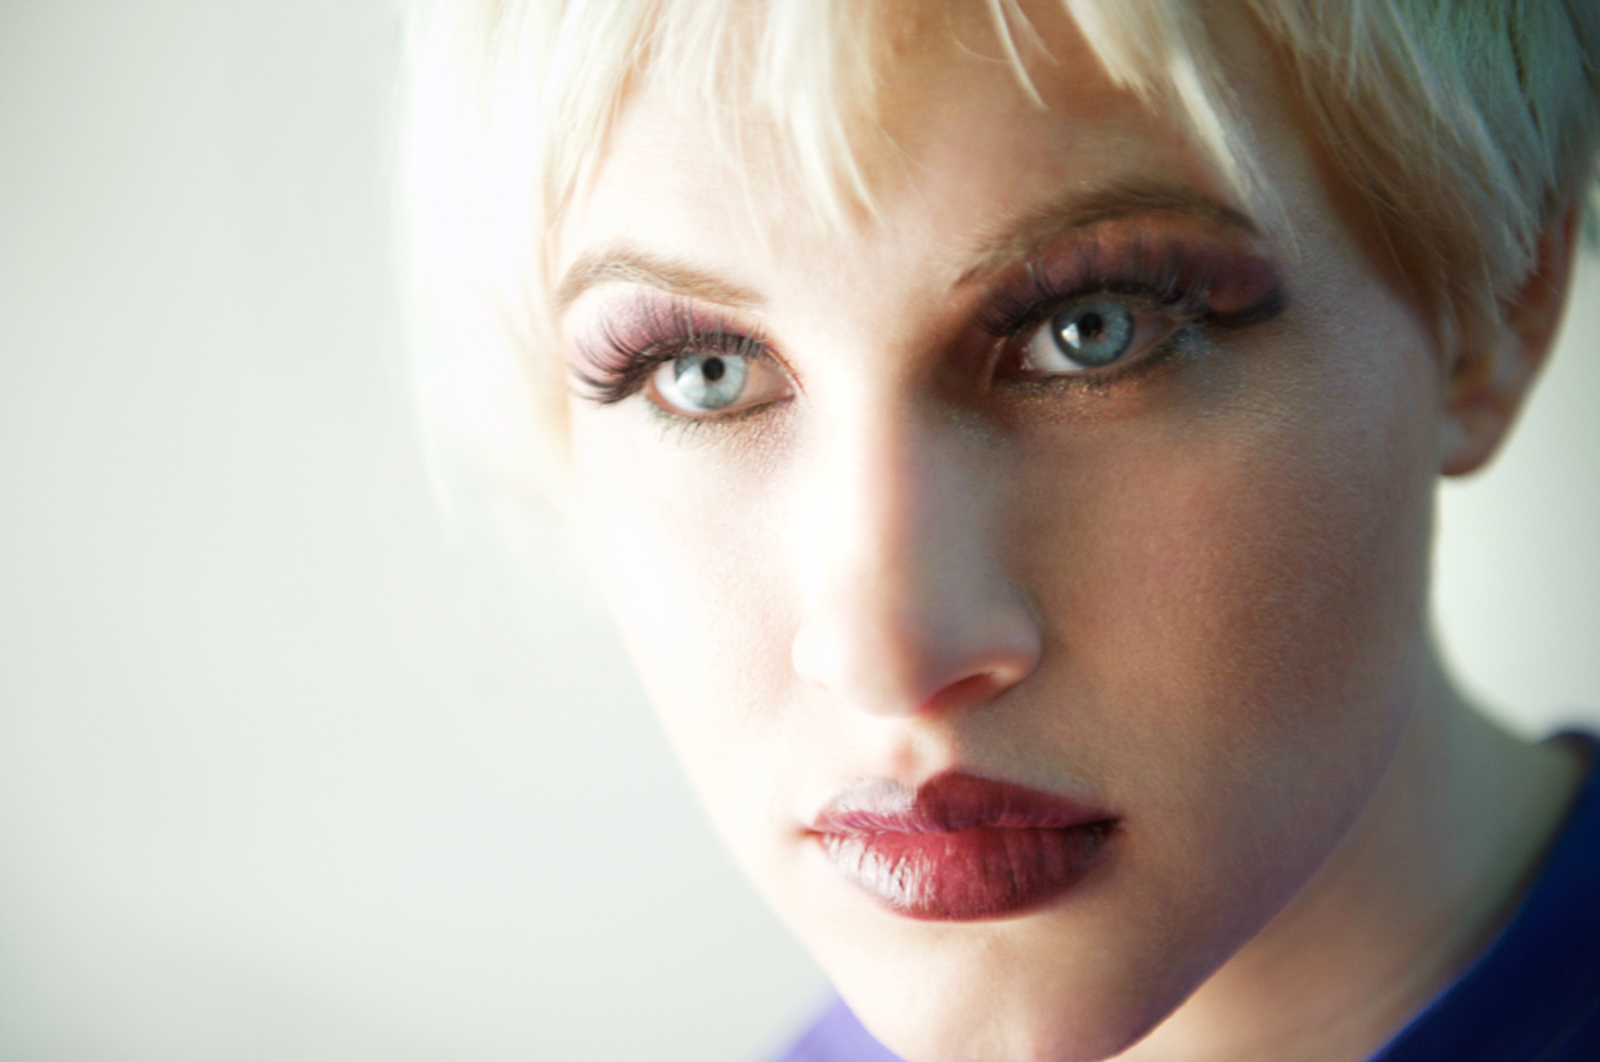 Portrait of green eyed woman, with dramatic red lipstick, looking intense